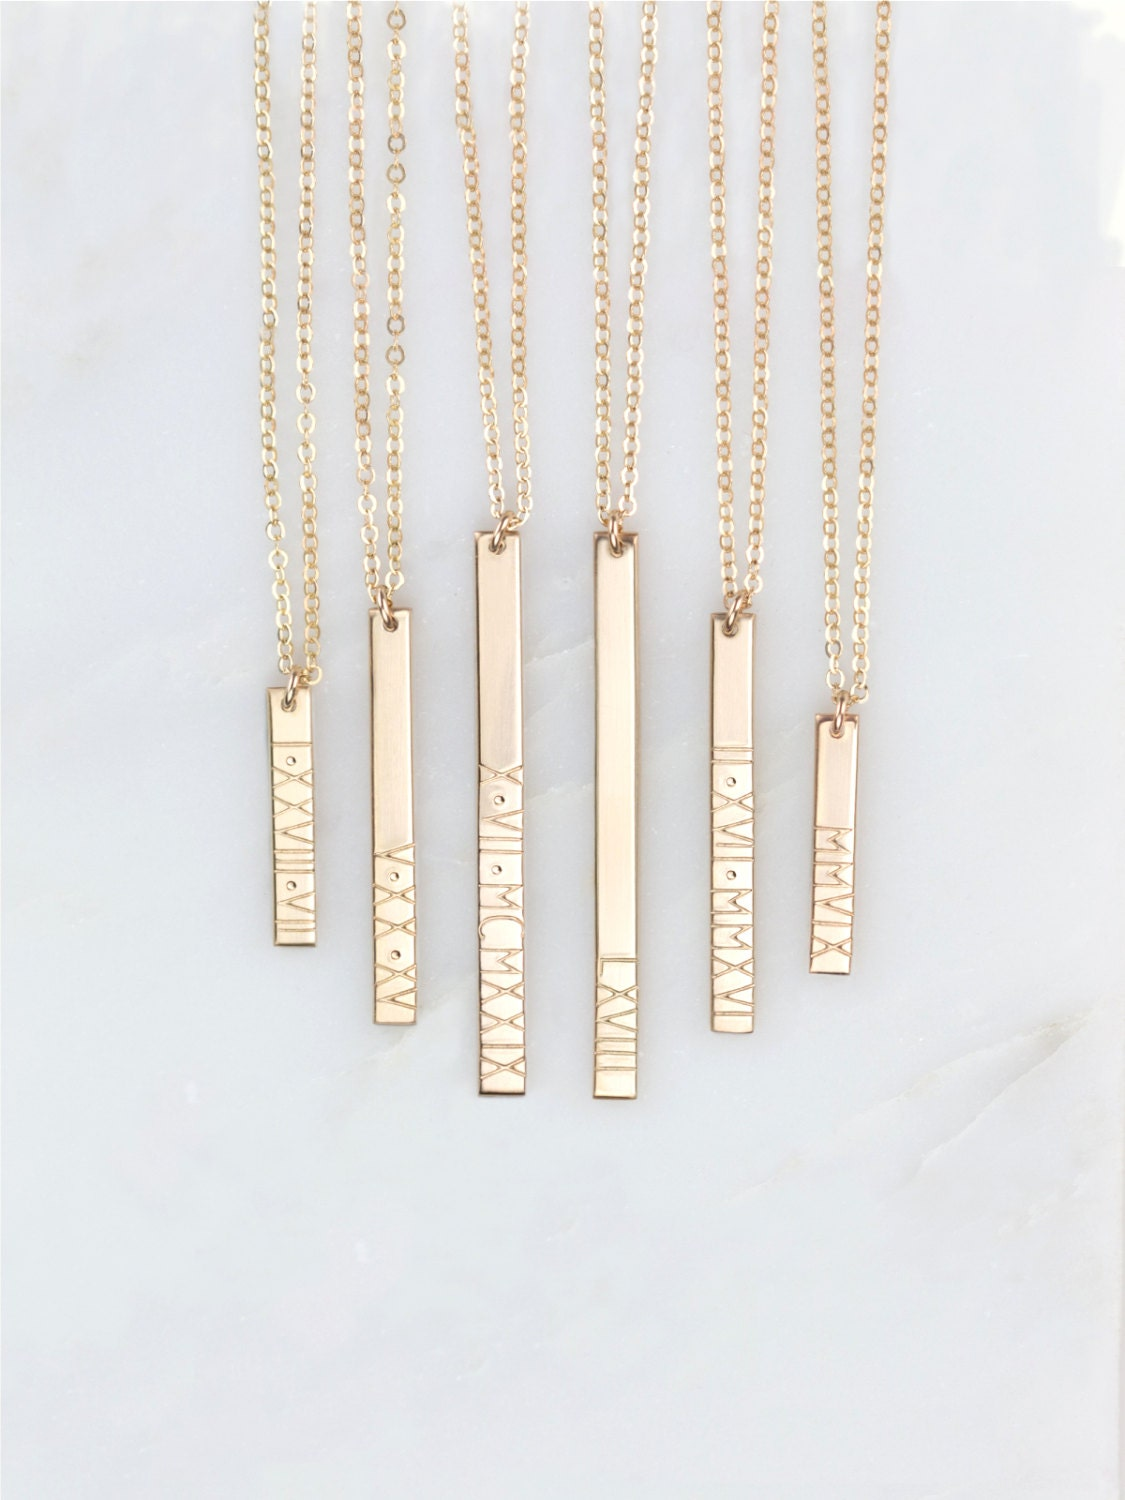 Personalized Roman Numeral Vertical Bar Necklace Customized